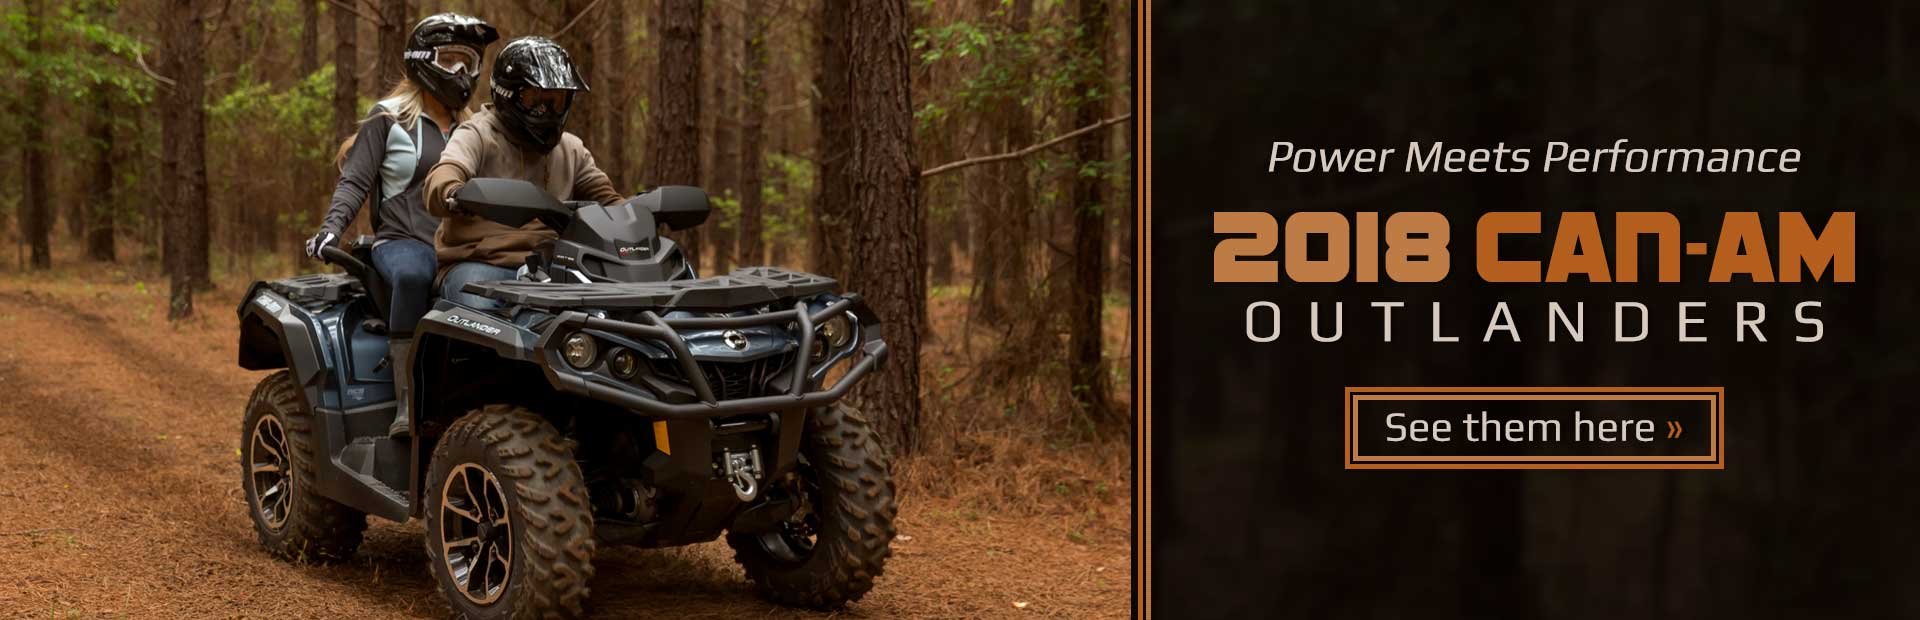 2018 Can-Am Outlanders: Click here to view the models.